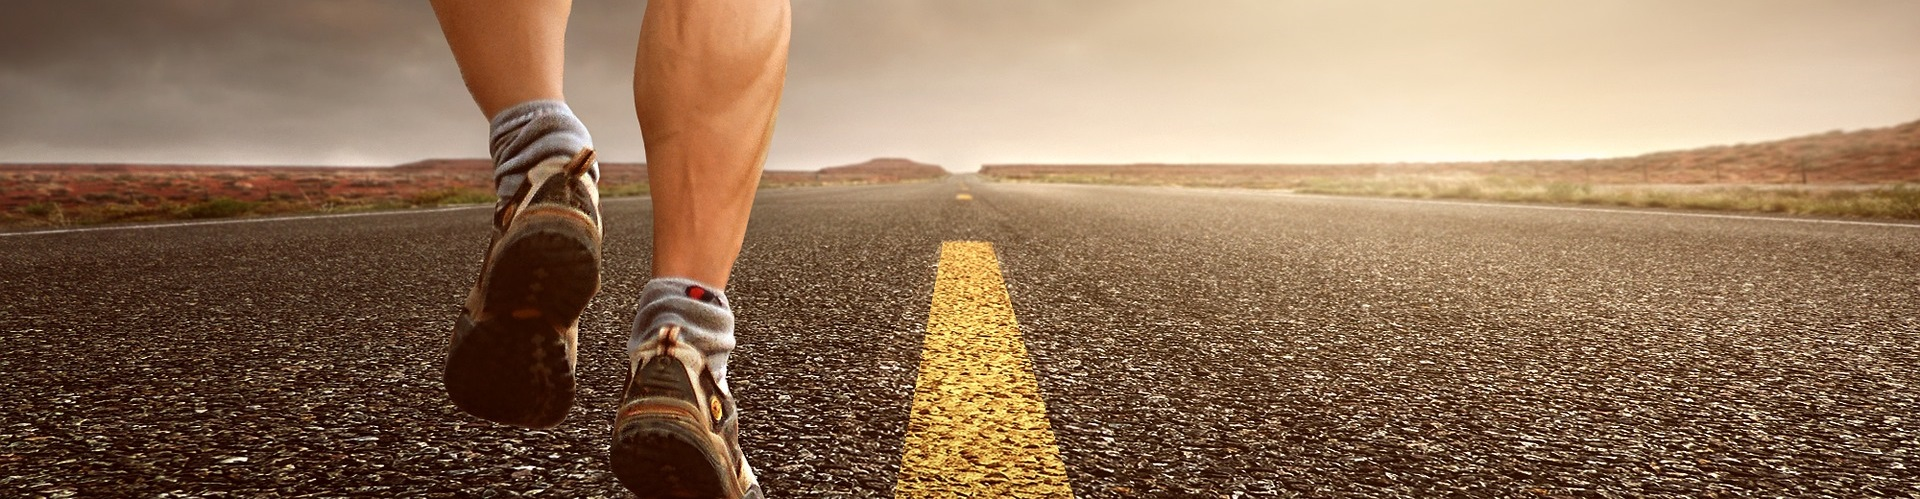 http://www.move-fysio.nl/images/banners/jogging1920_500.jpg